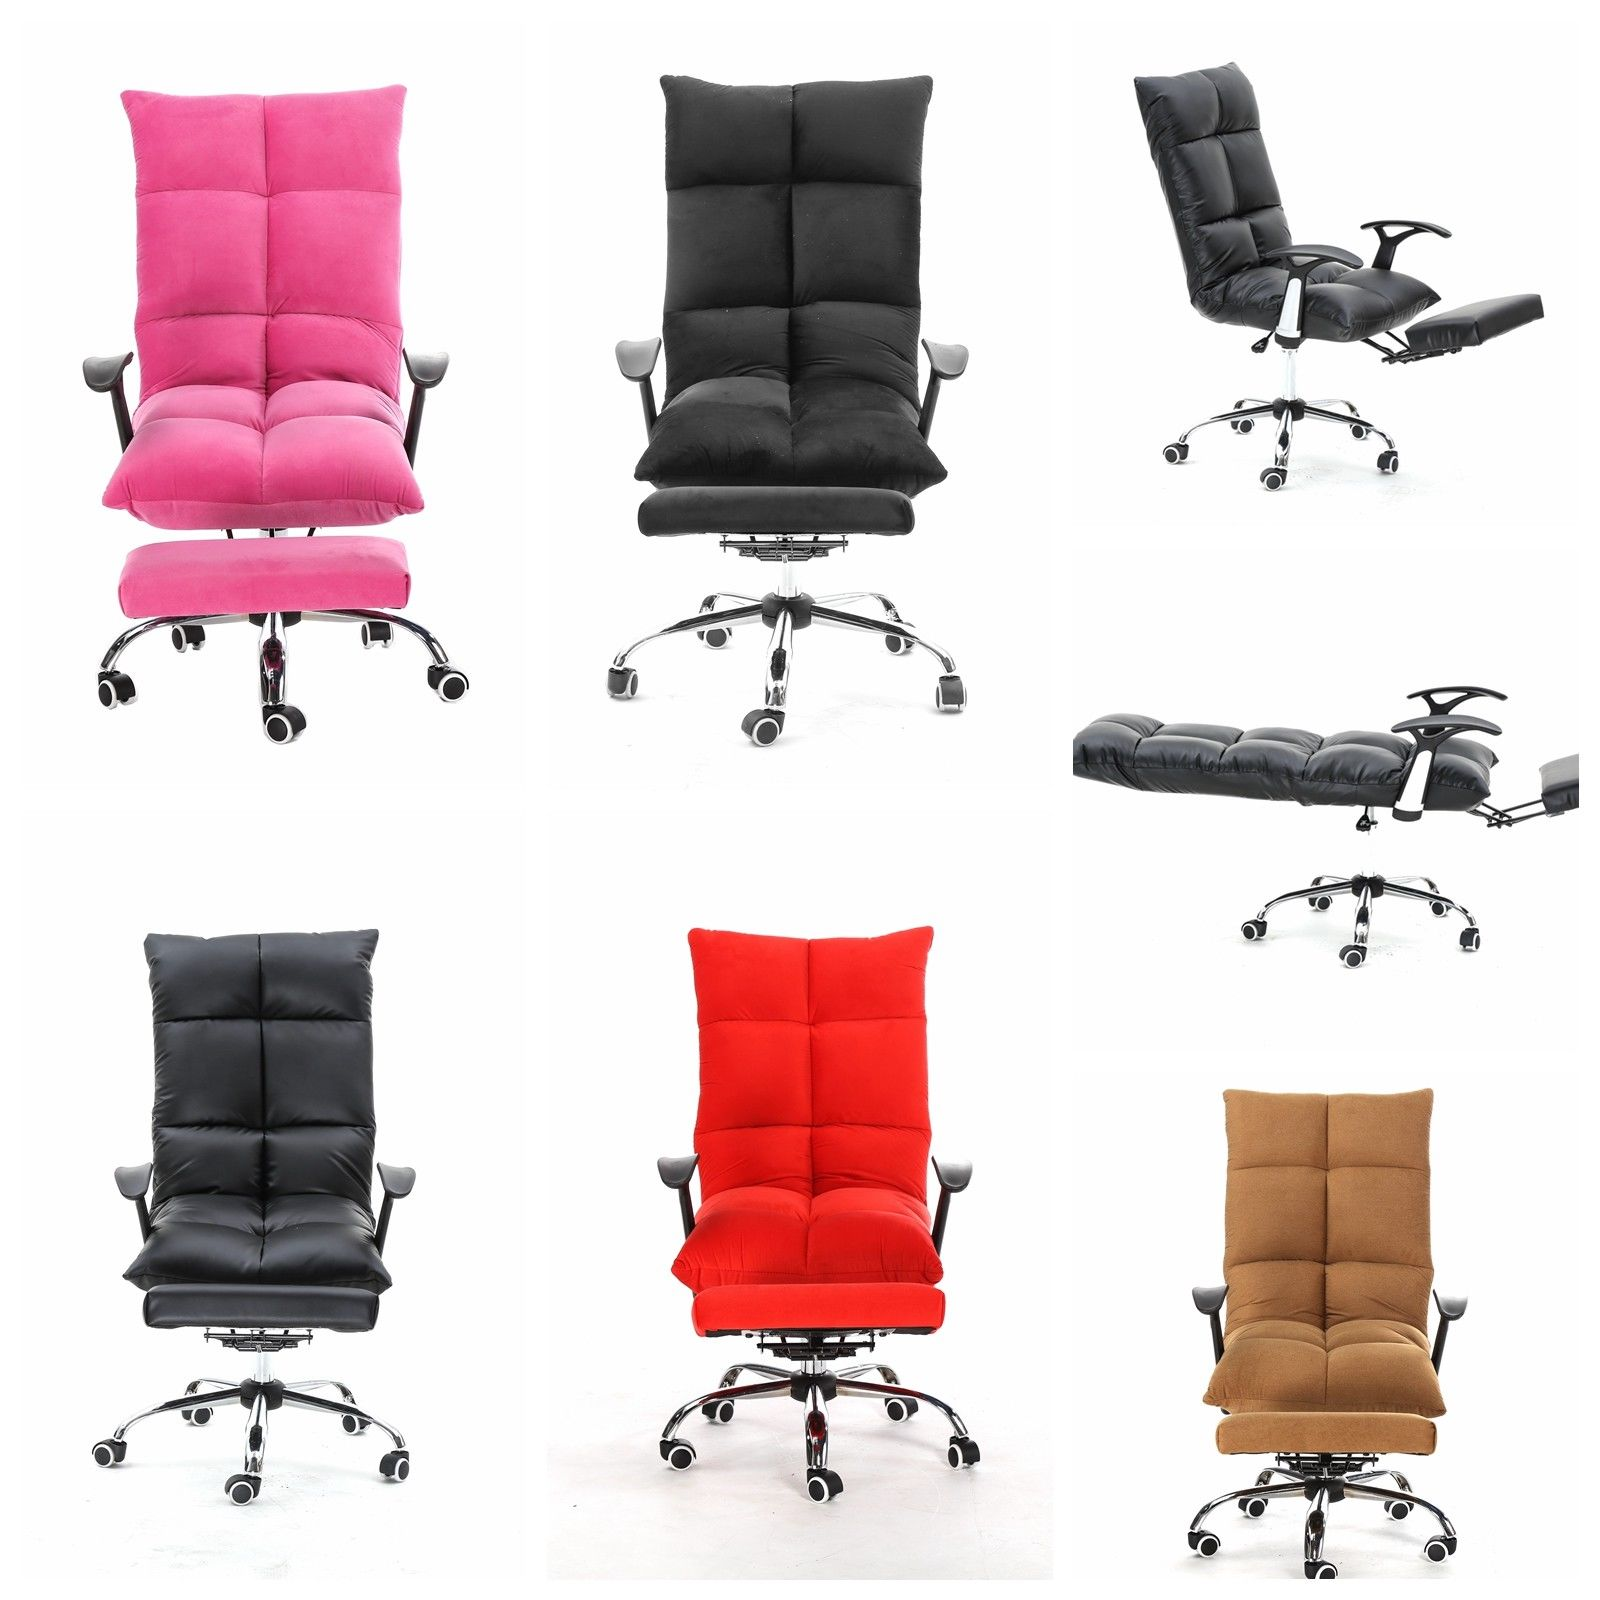 add on headrest for office chair the cheap covers folding chairs 5 position mul functional tatami home computer desk with adjustable footrest lay flat pink walmart com